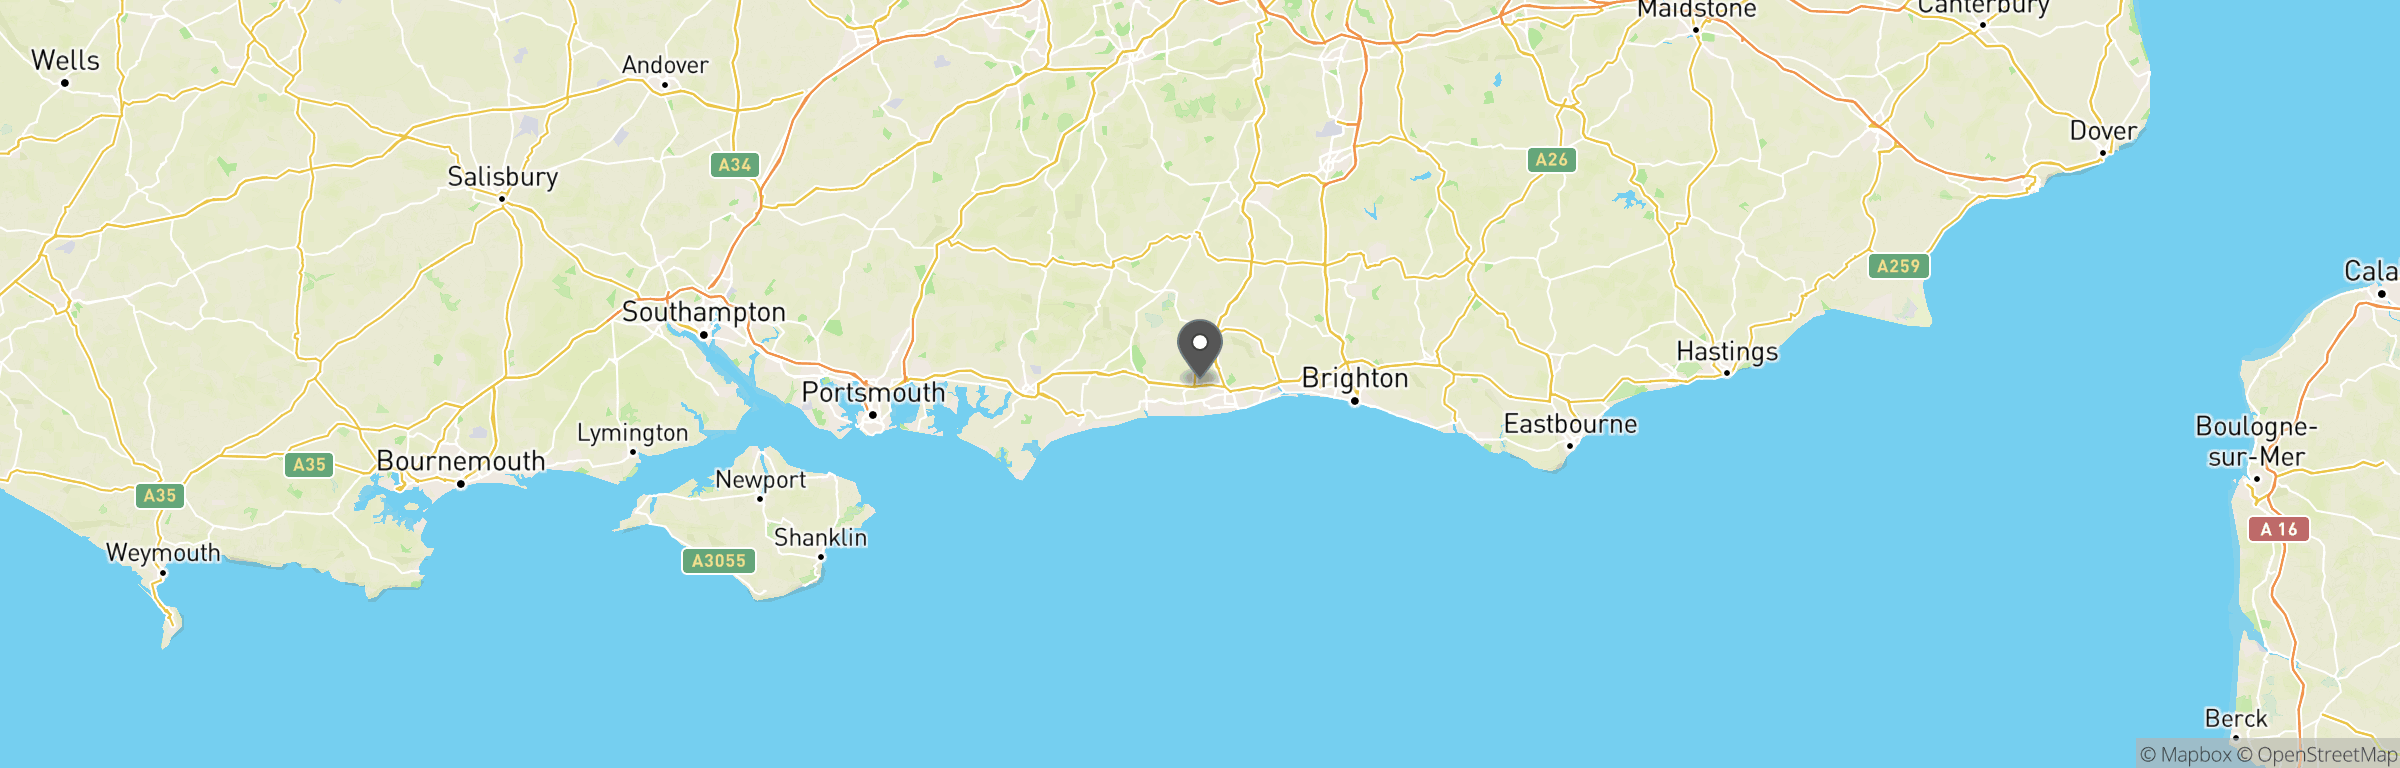 Location map of Worthing Airsoft